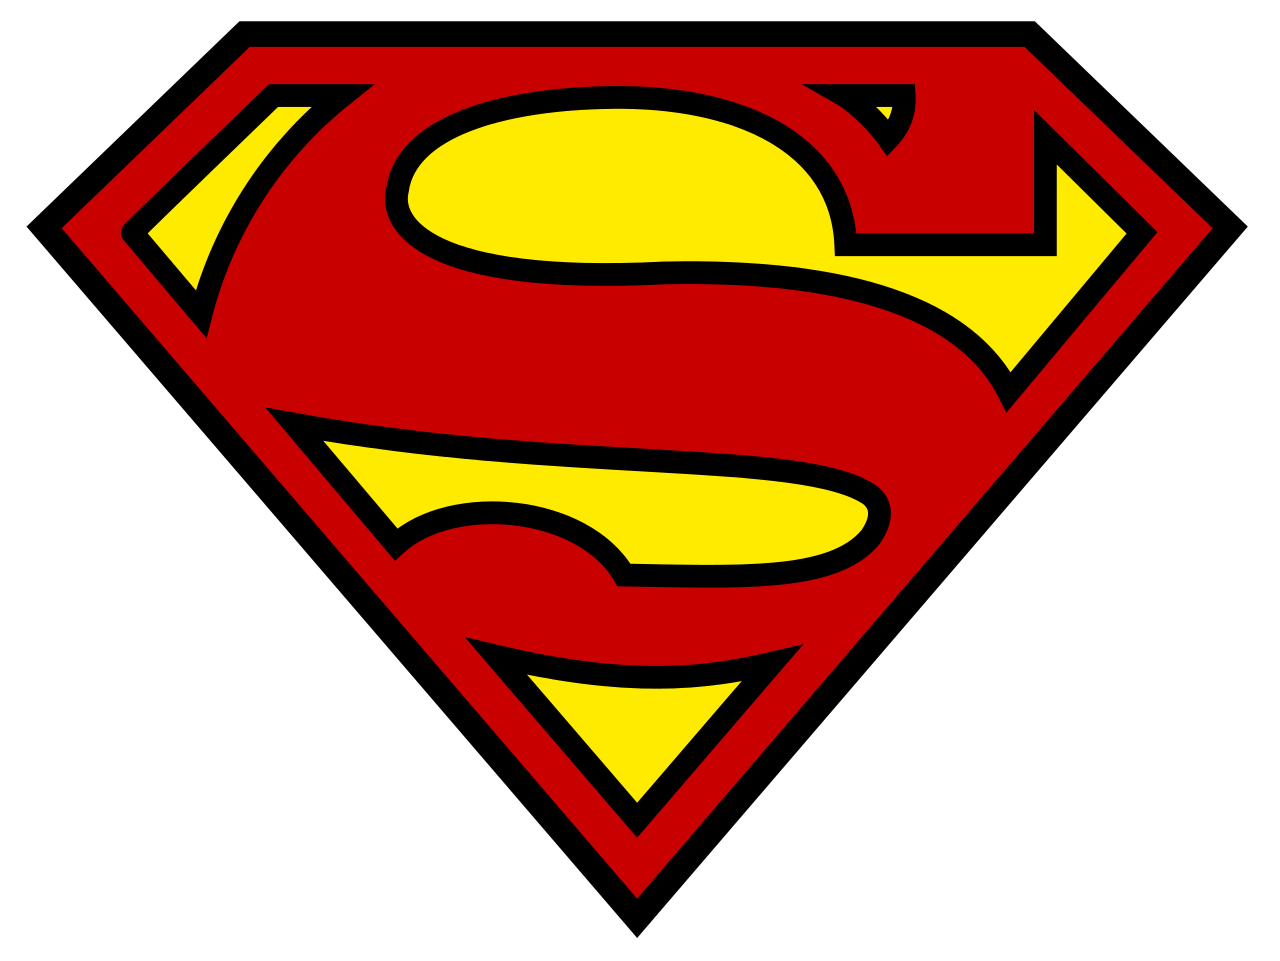 P transparent superman. Logo wikipedia shieldsvg